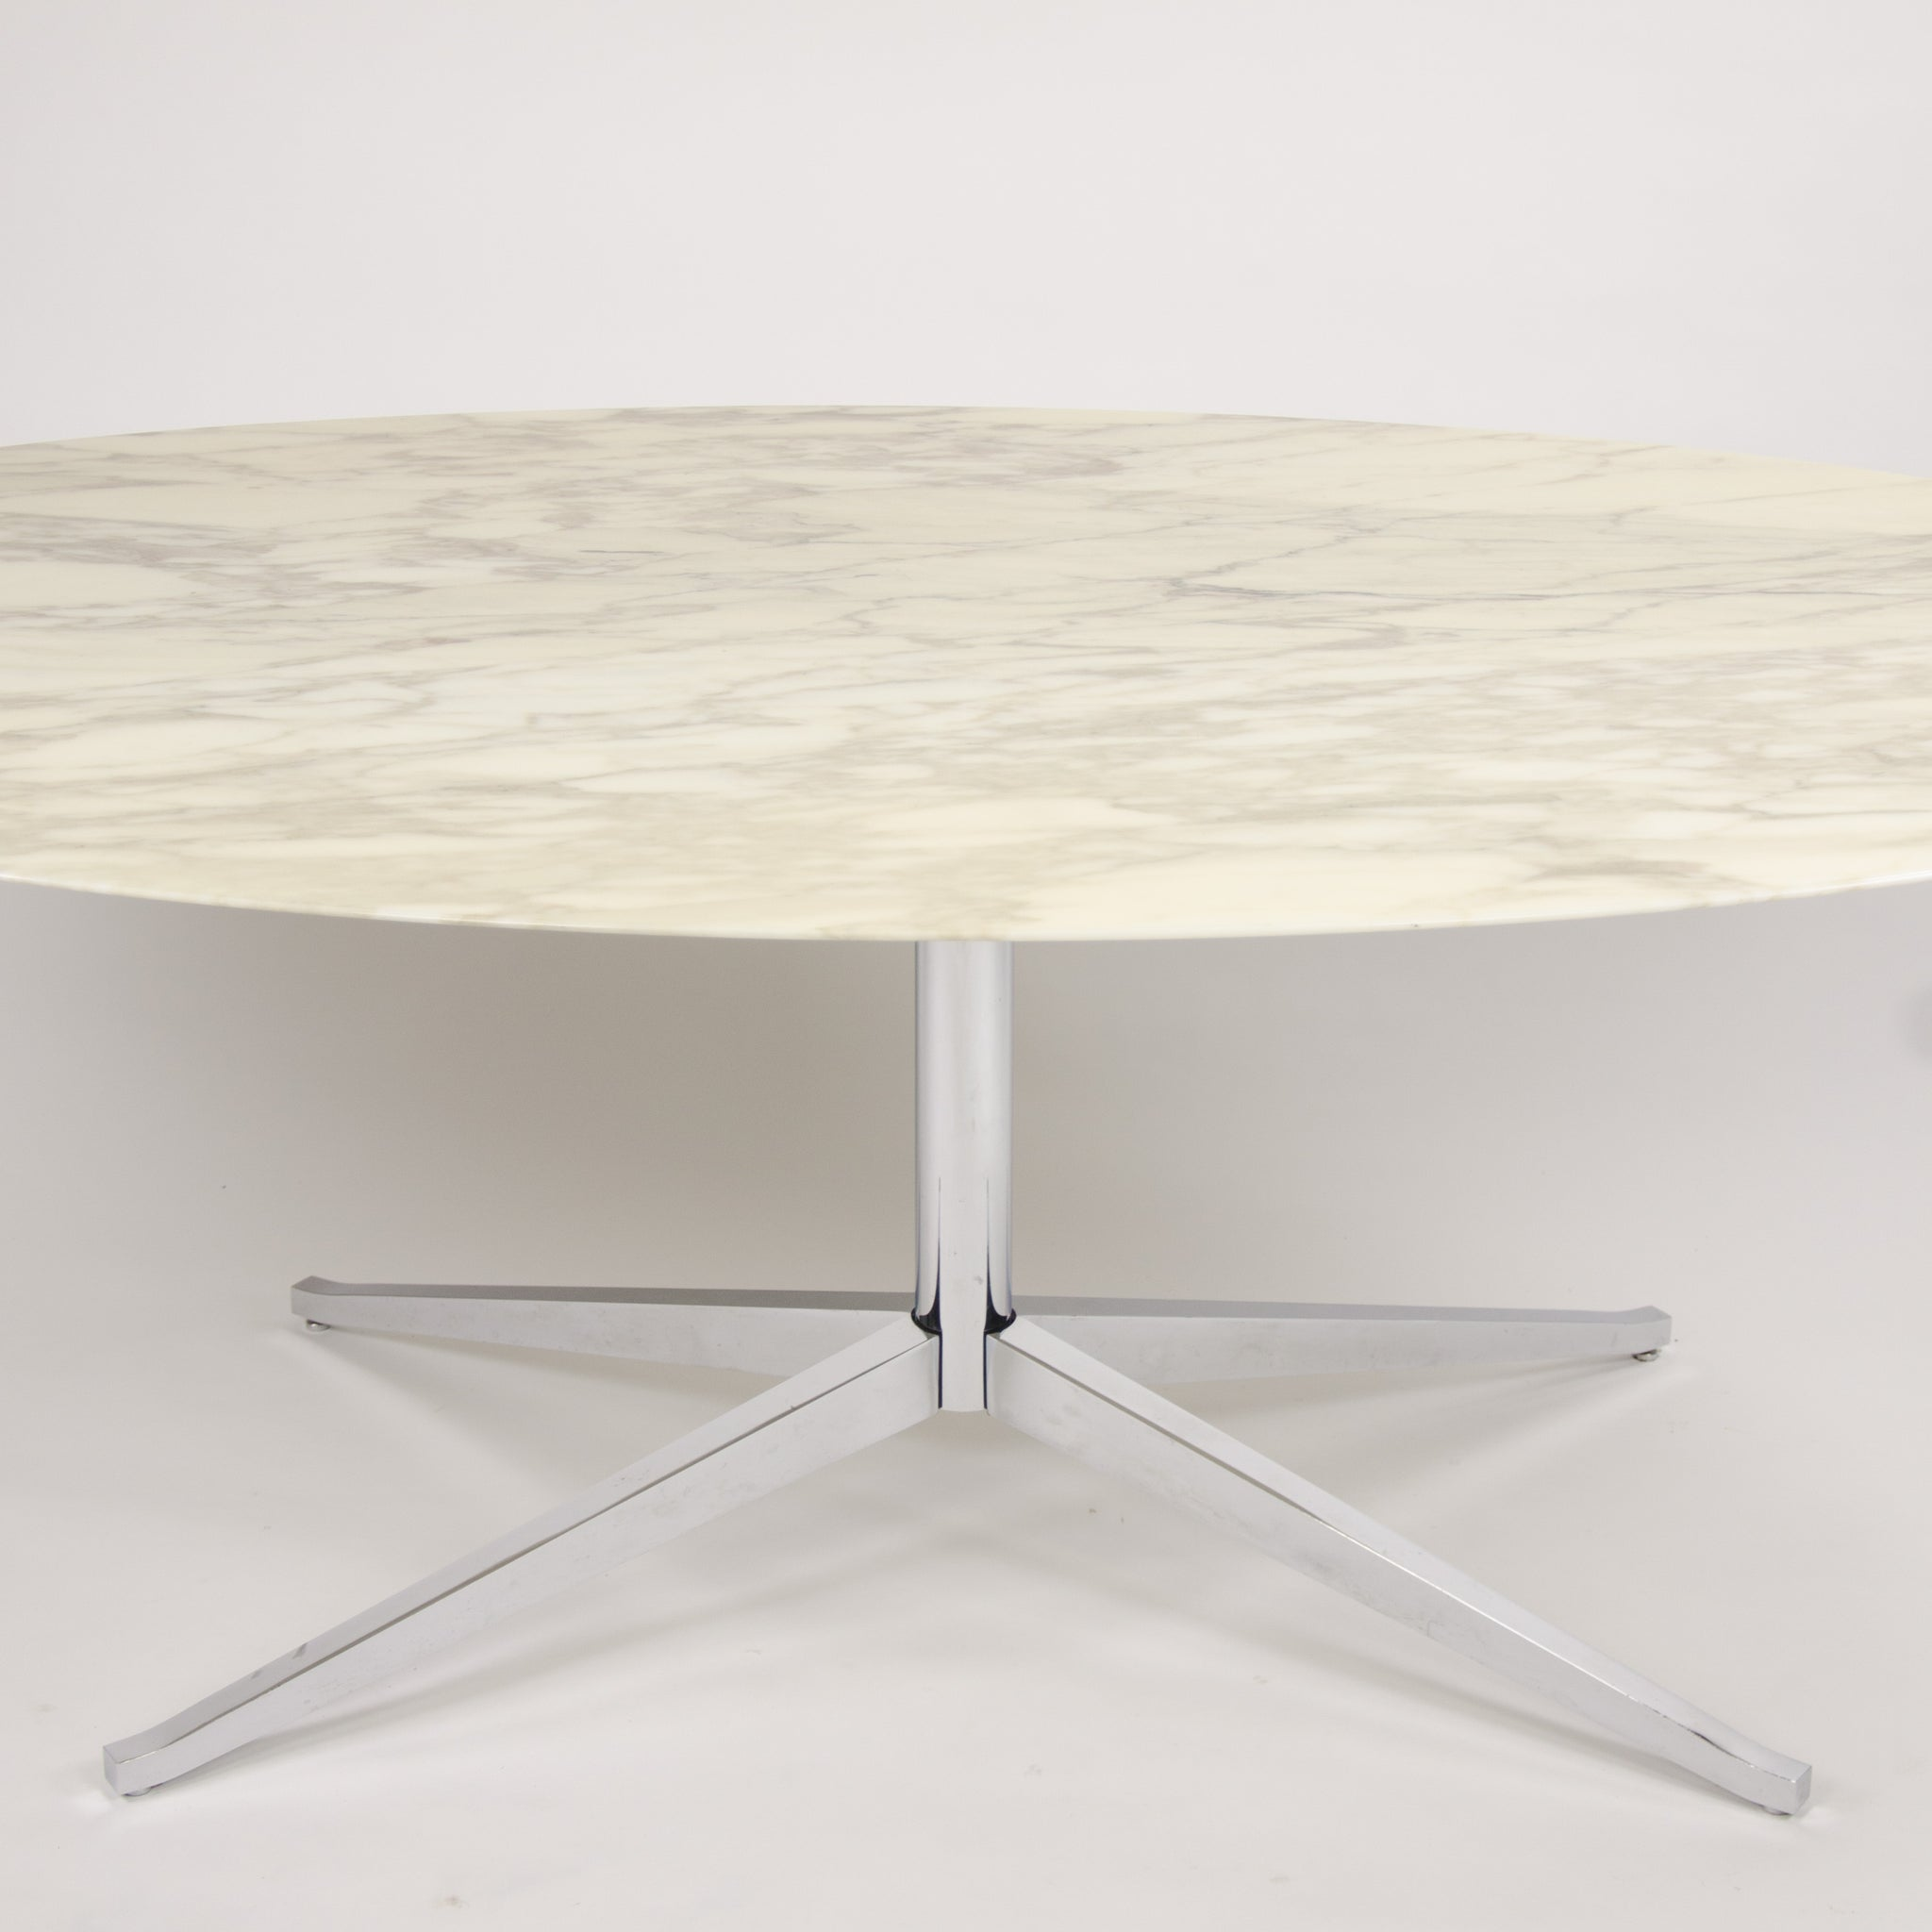 Florence Knoll 78in Calacatta Marble Dining Conference Table 2009 5x Available